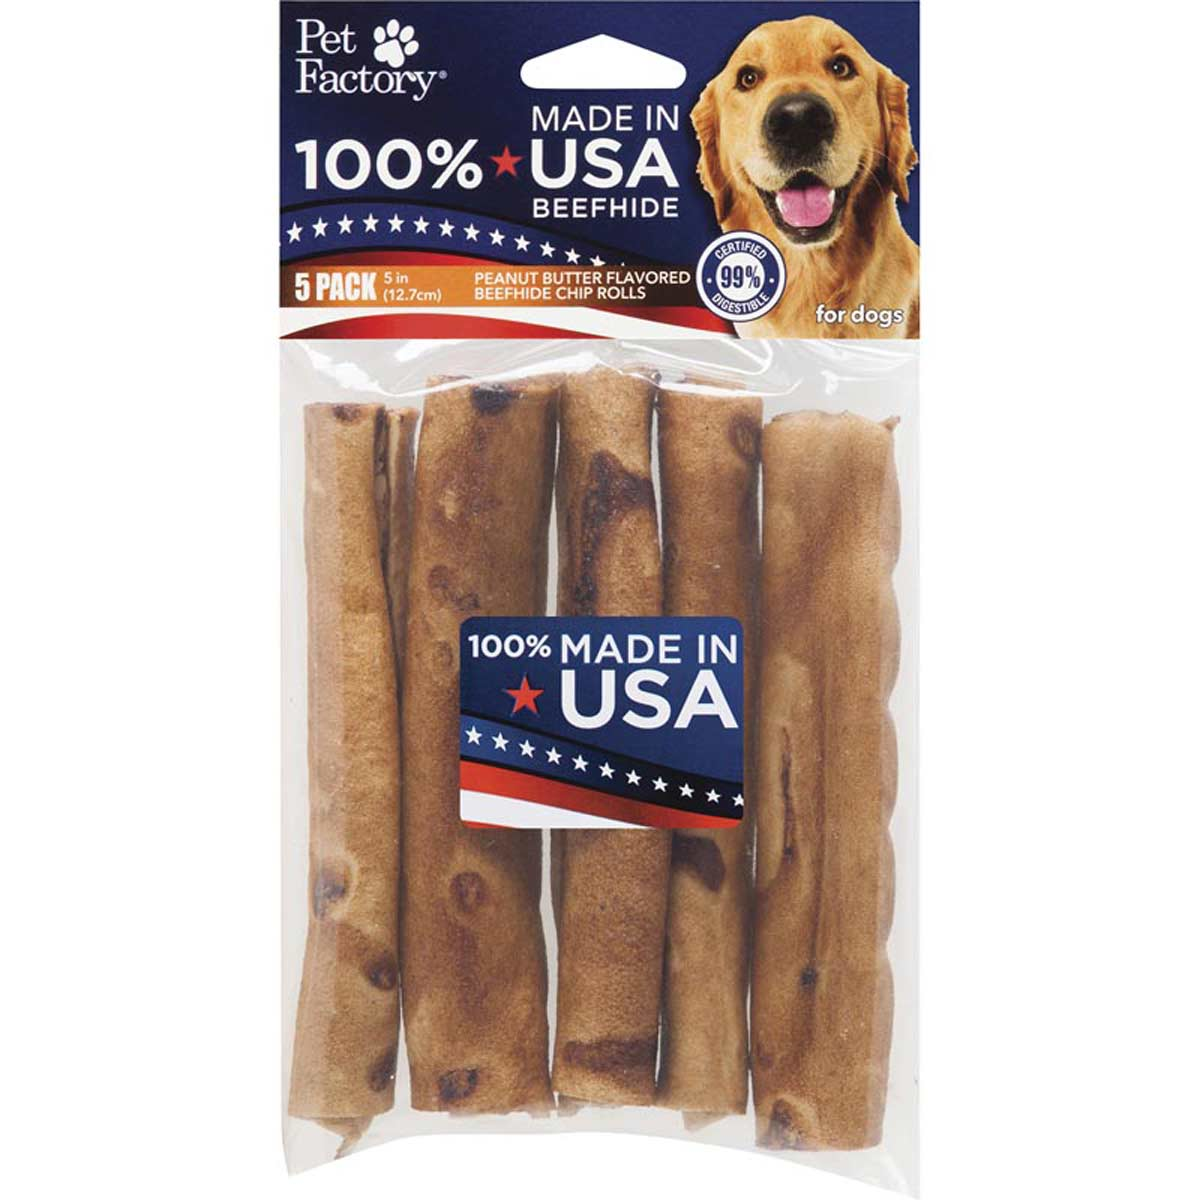 Pet Factory 5 inch Peanut Butter Rolls 5 Pack